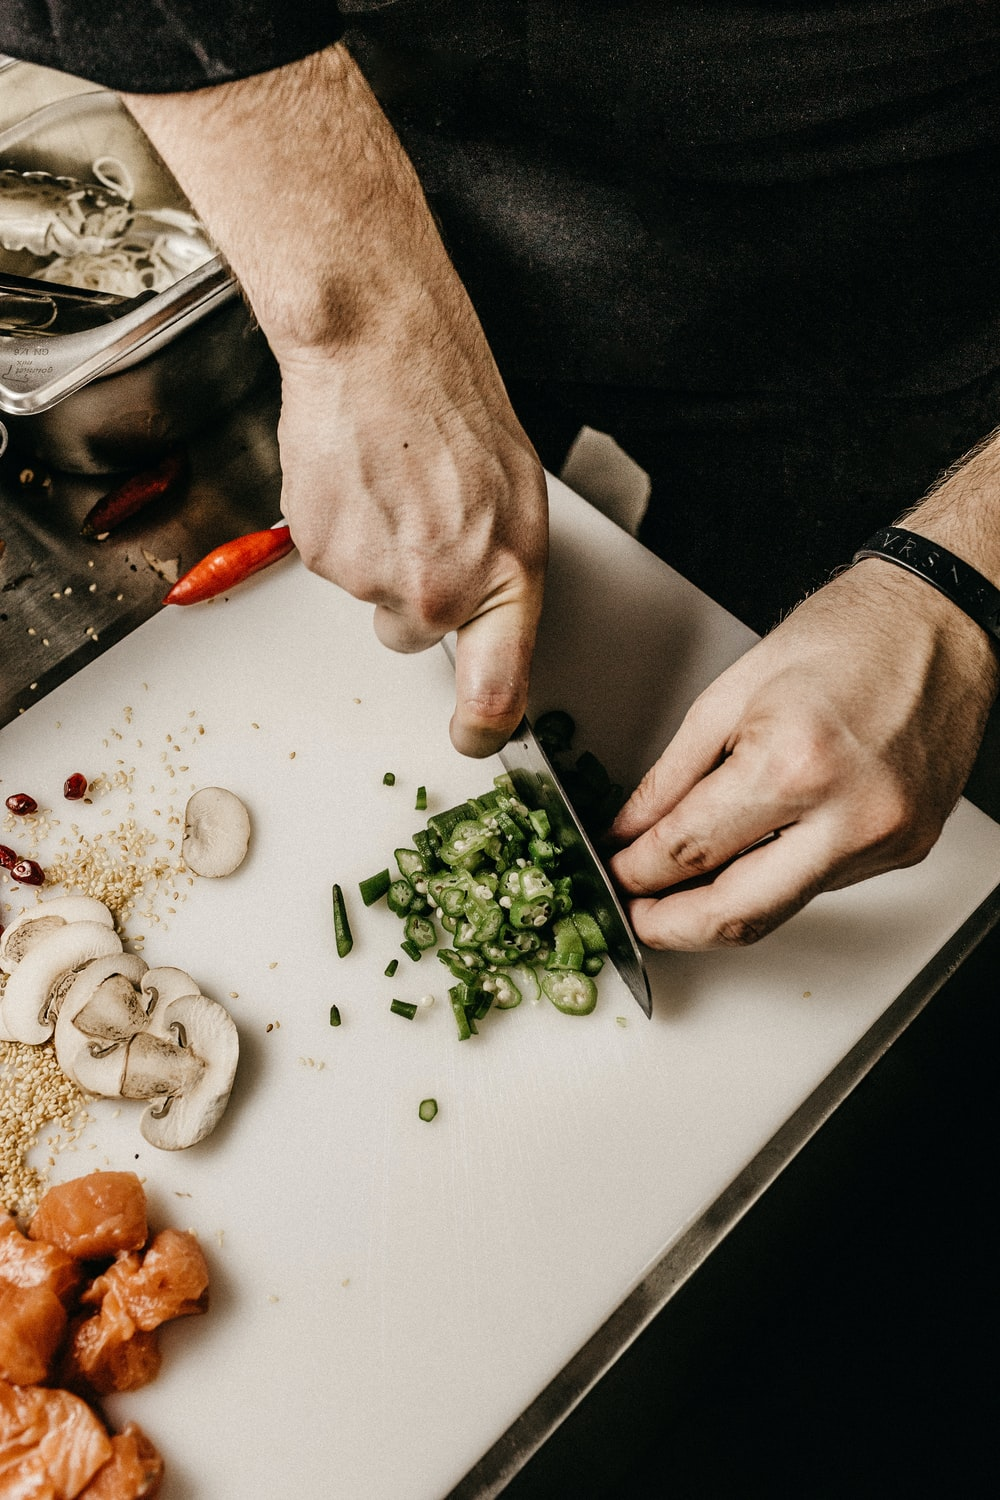 person slicing vegetable